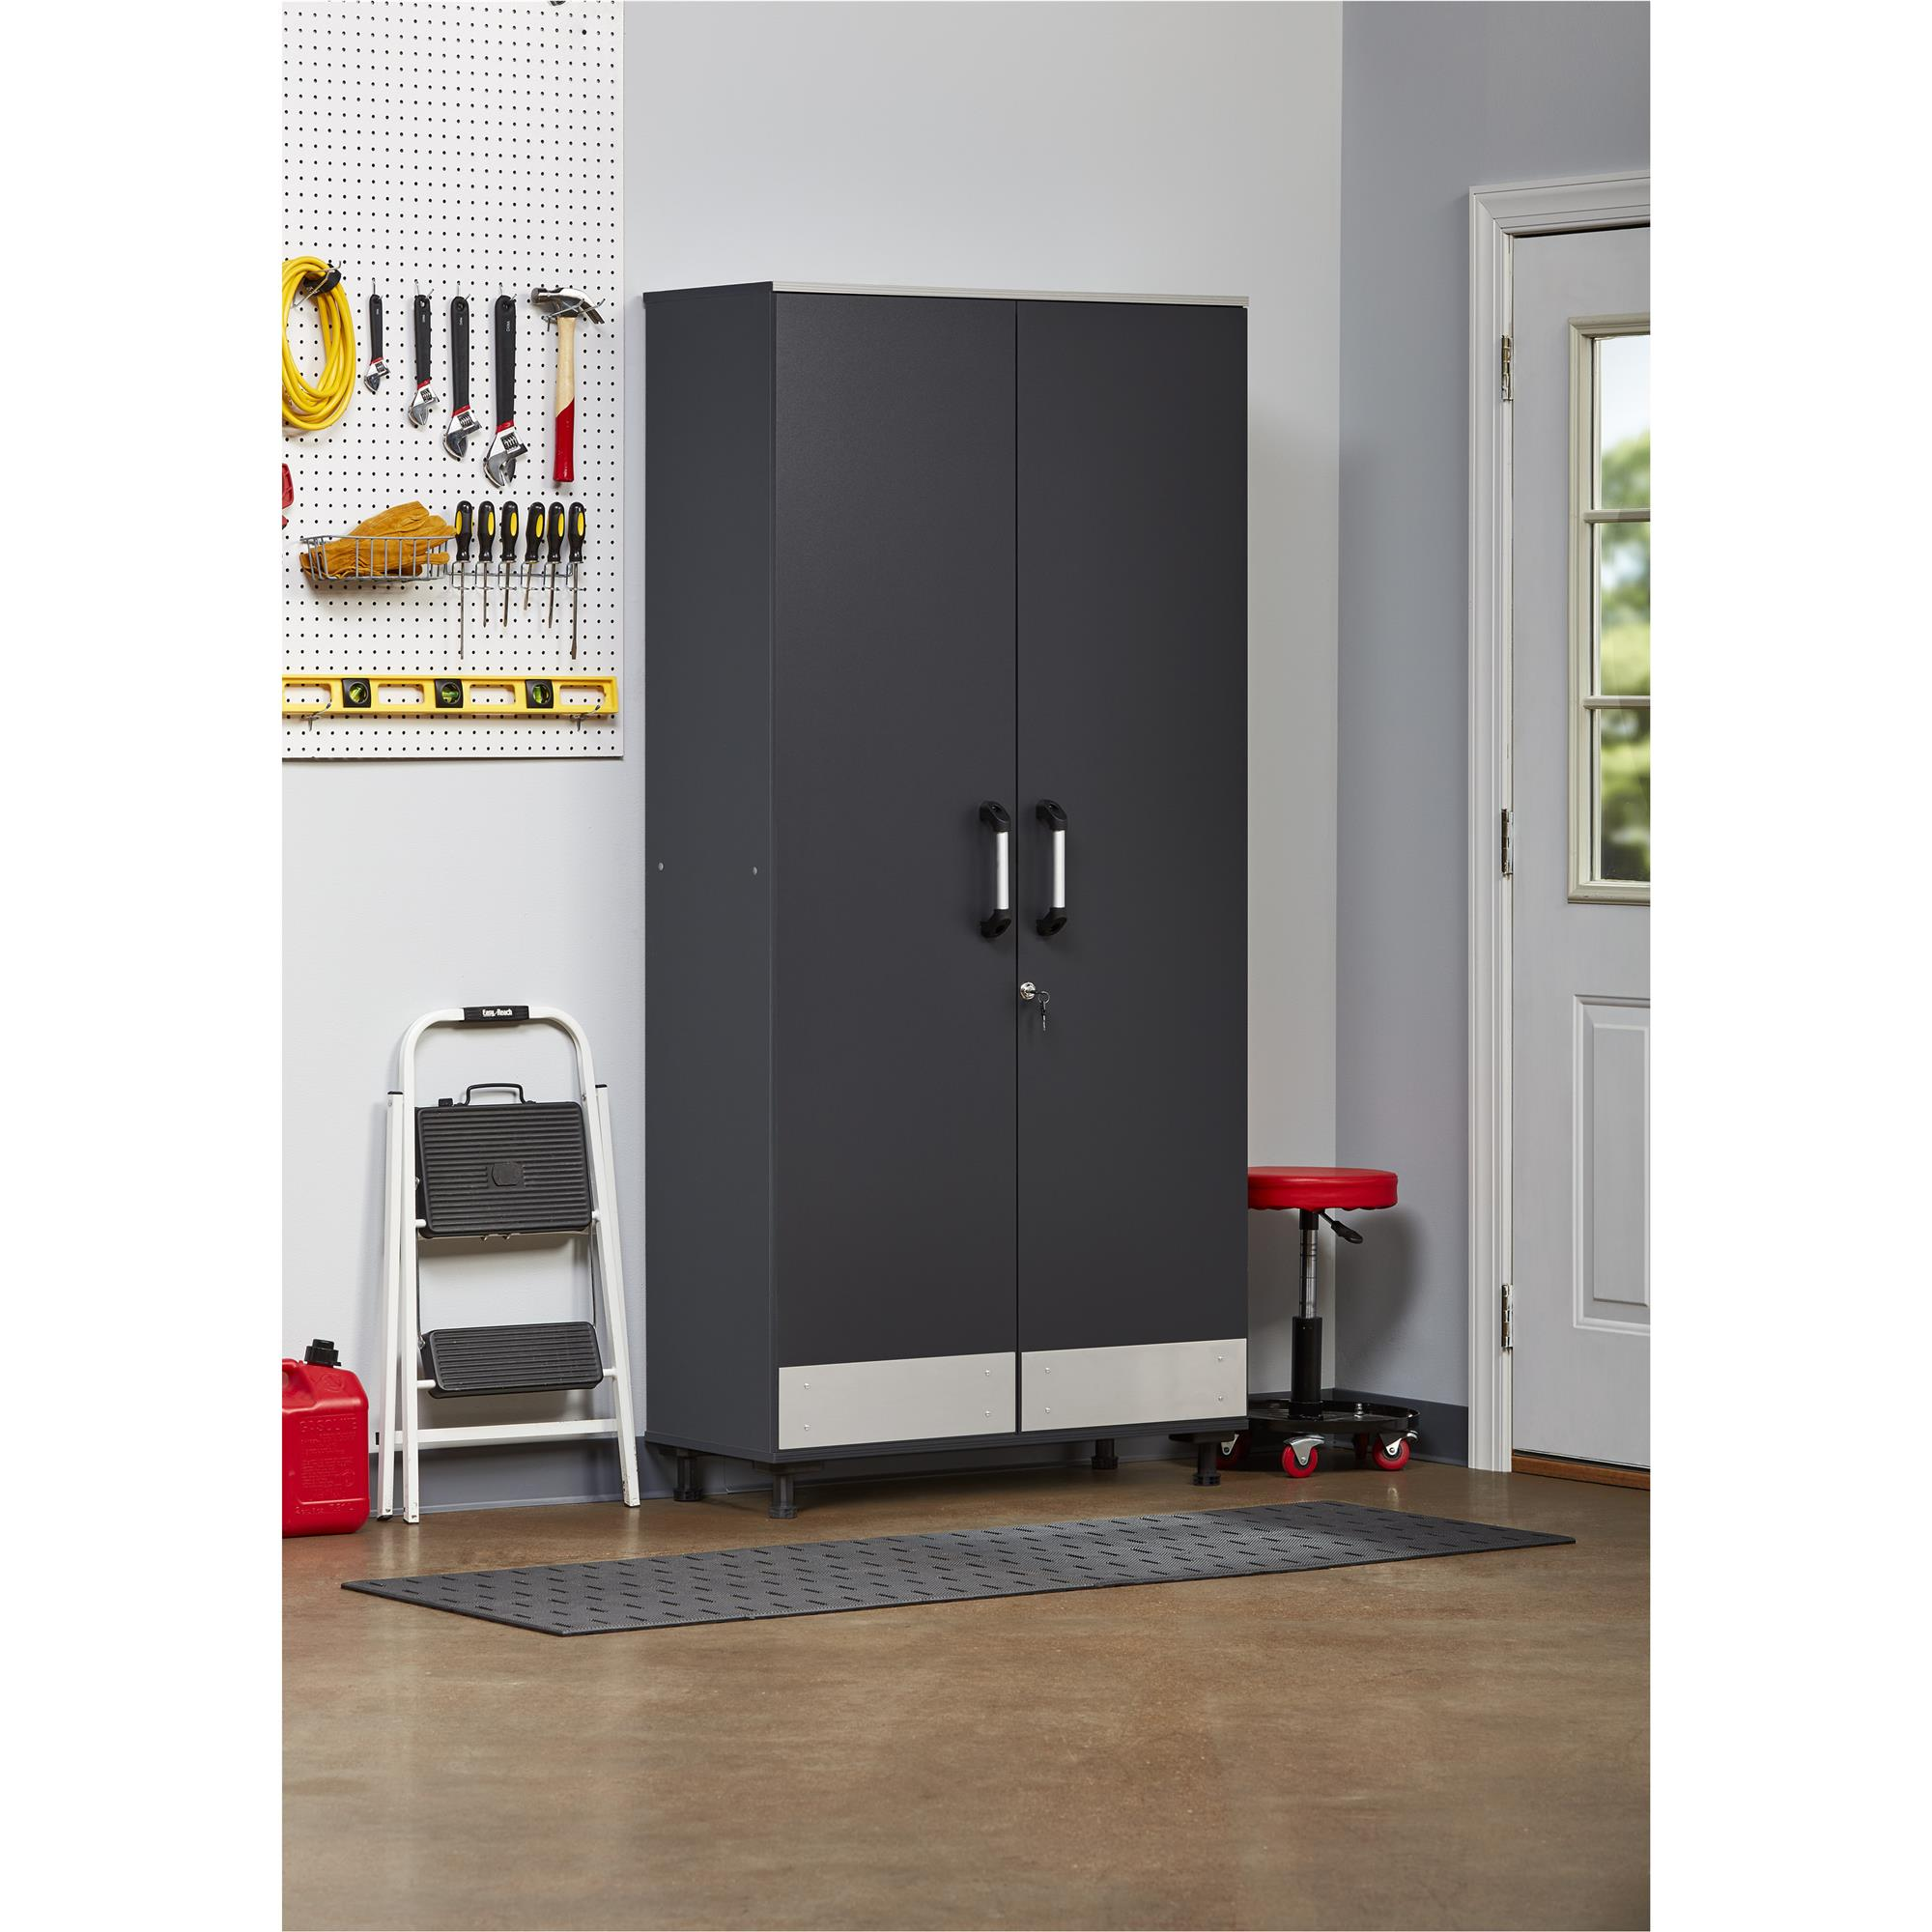 wolf armoires furniture with by and universal products gardiner door cabinet doors storage tall